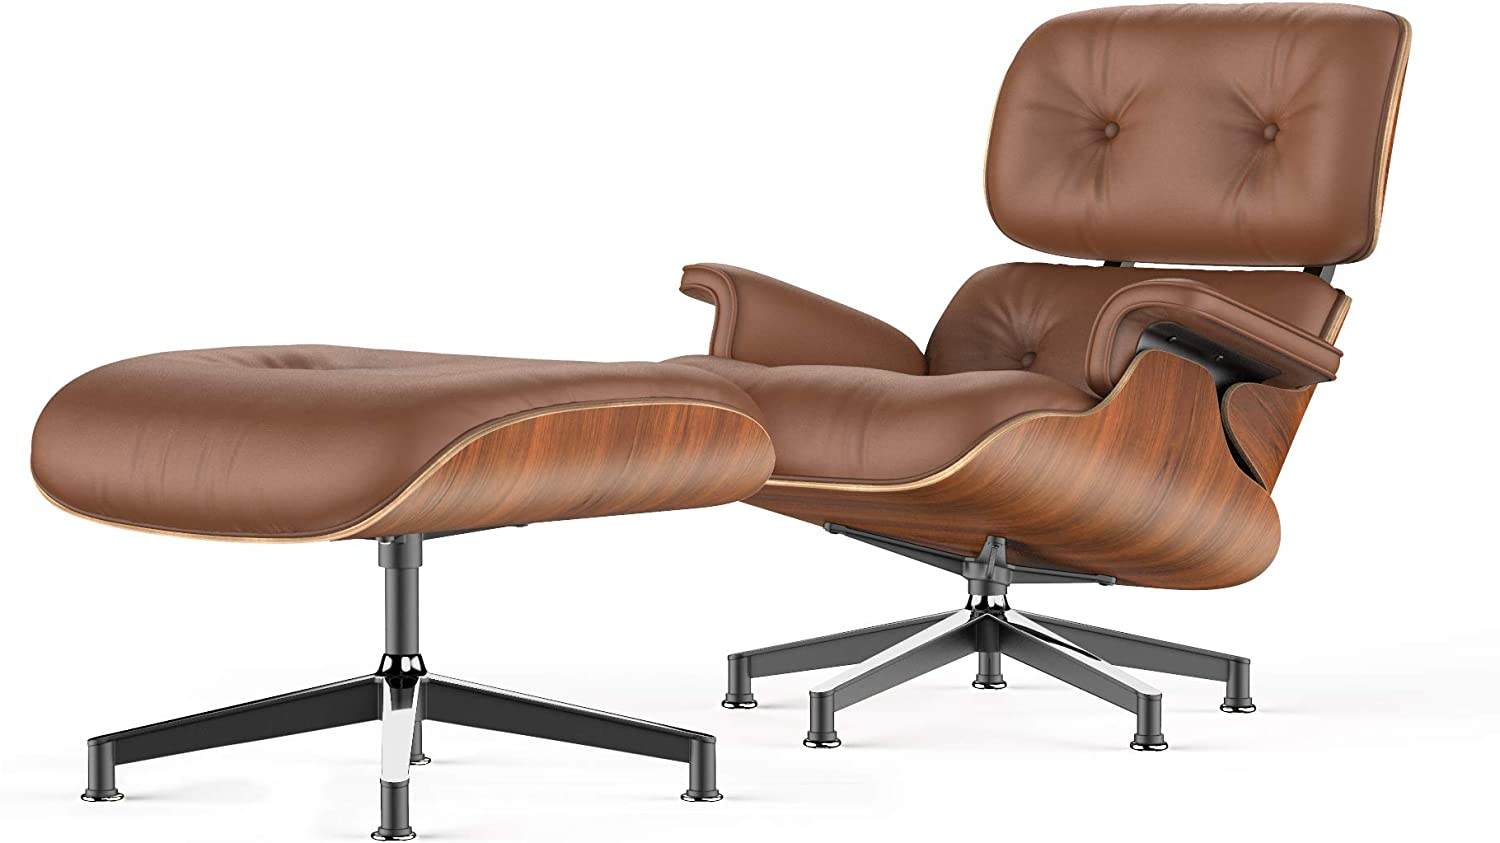 Shop Lounge Chair and Ottoman Mid Century Chair Premium Replica Classic Furniture from Amazon on Openhaus